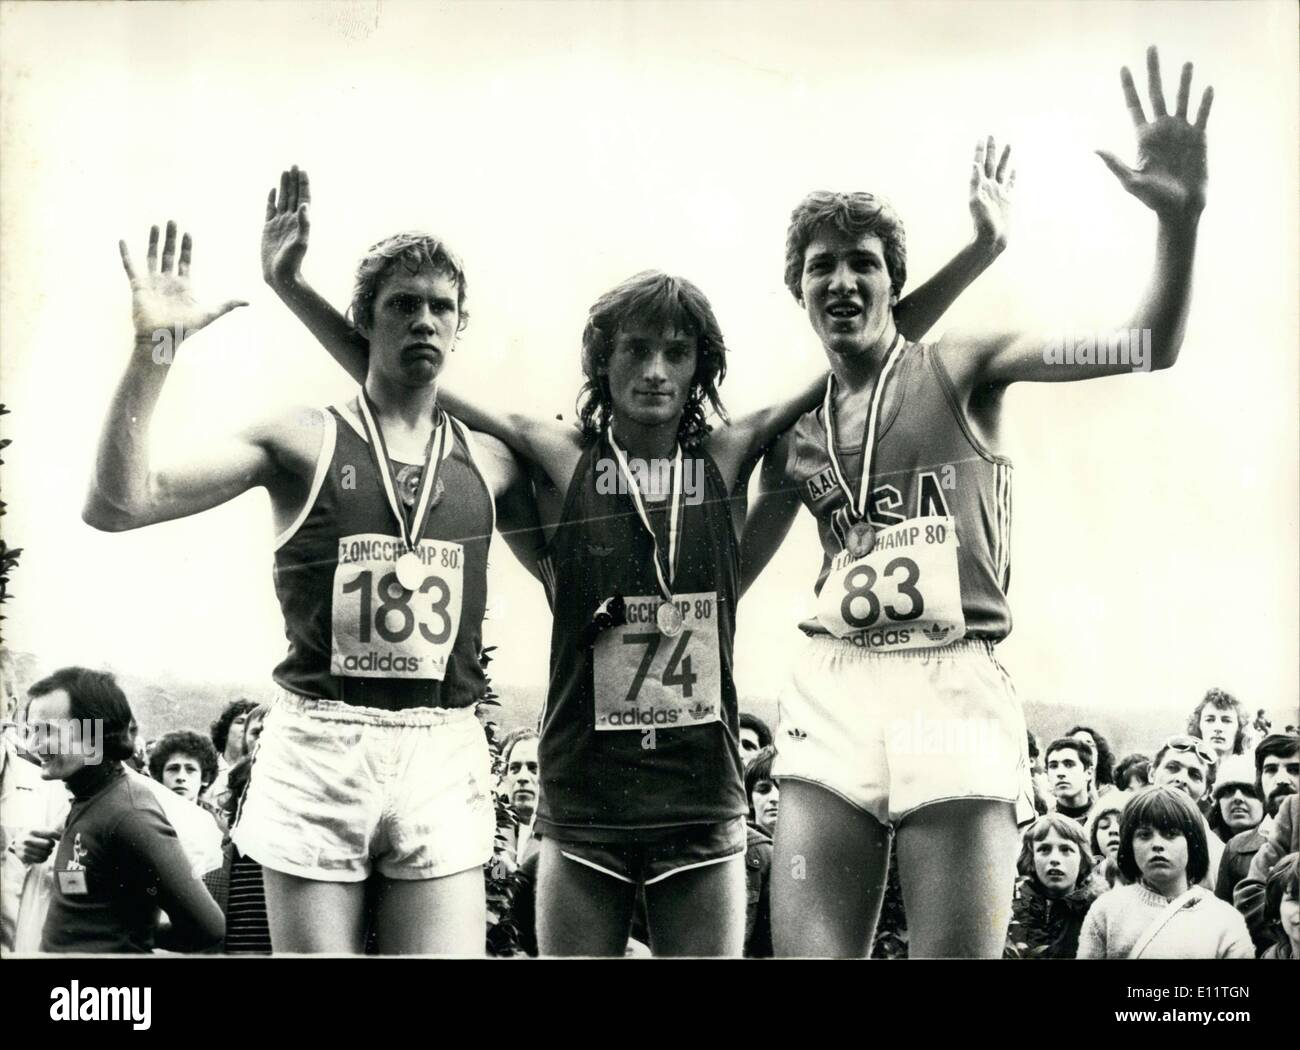 Mar. 10, 1980 - On the podium, left to right: Soviet Union's Valery Gryaznov (2nd), Gorge Garcia (1st), and America's Edward Eyestone (3rd) - Stock Image